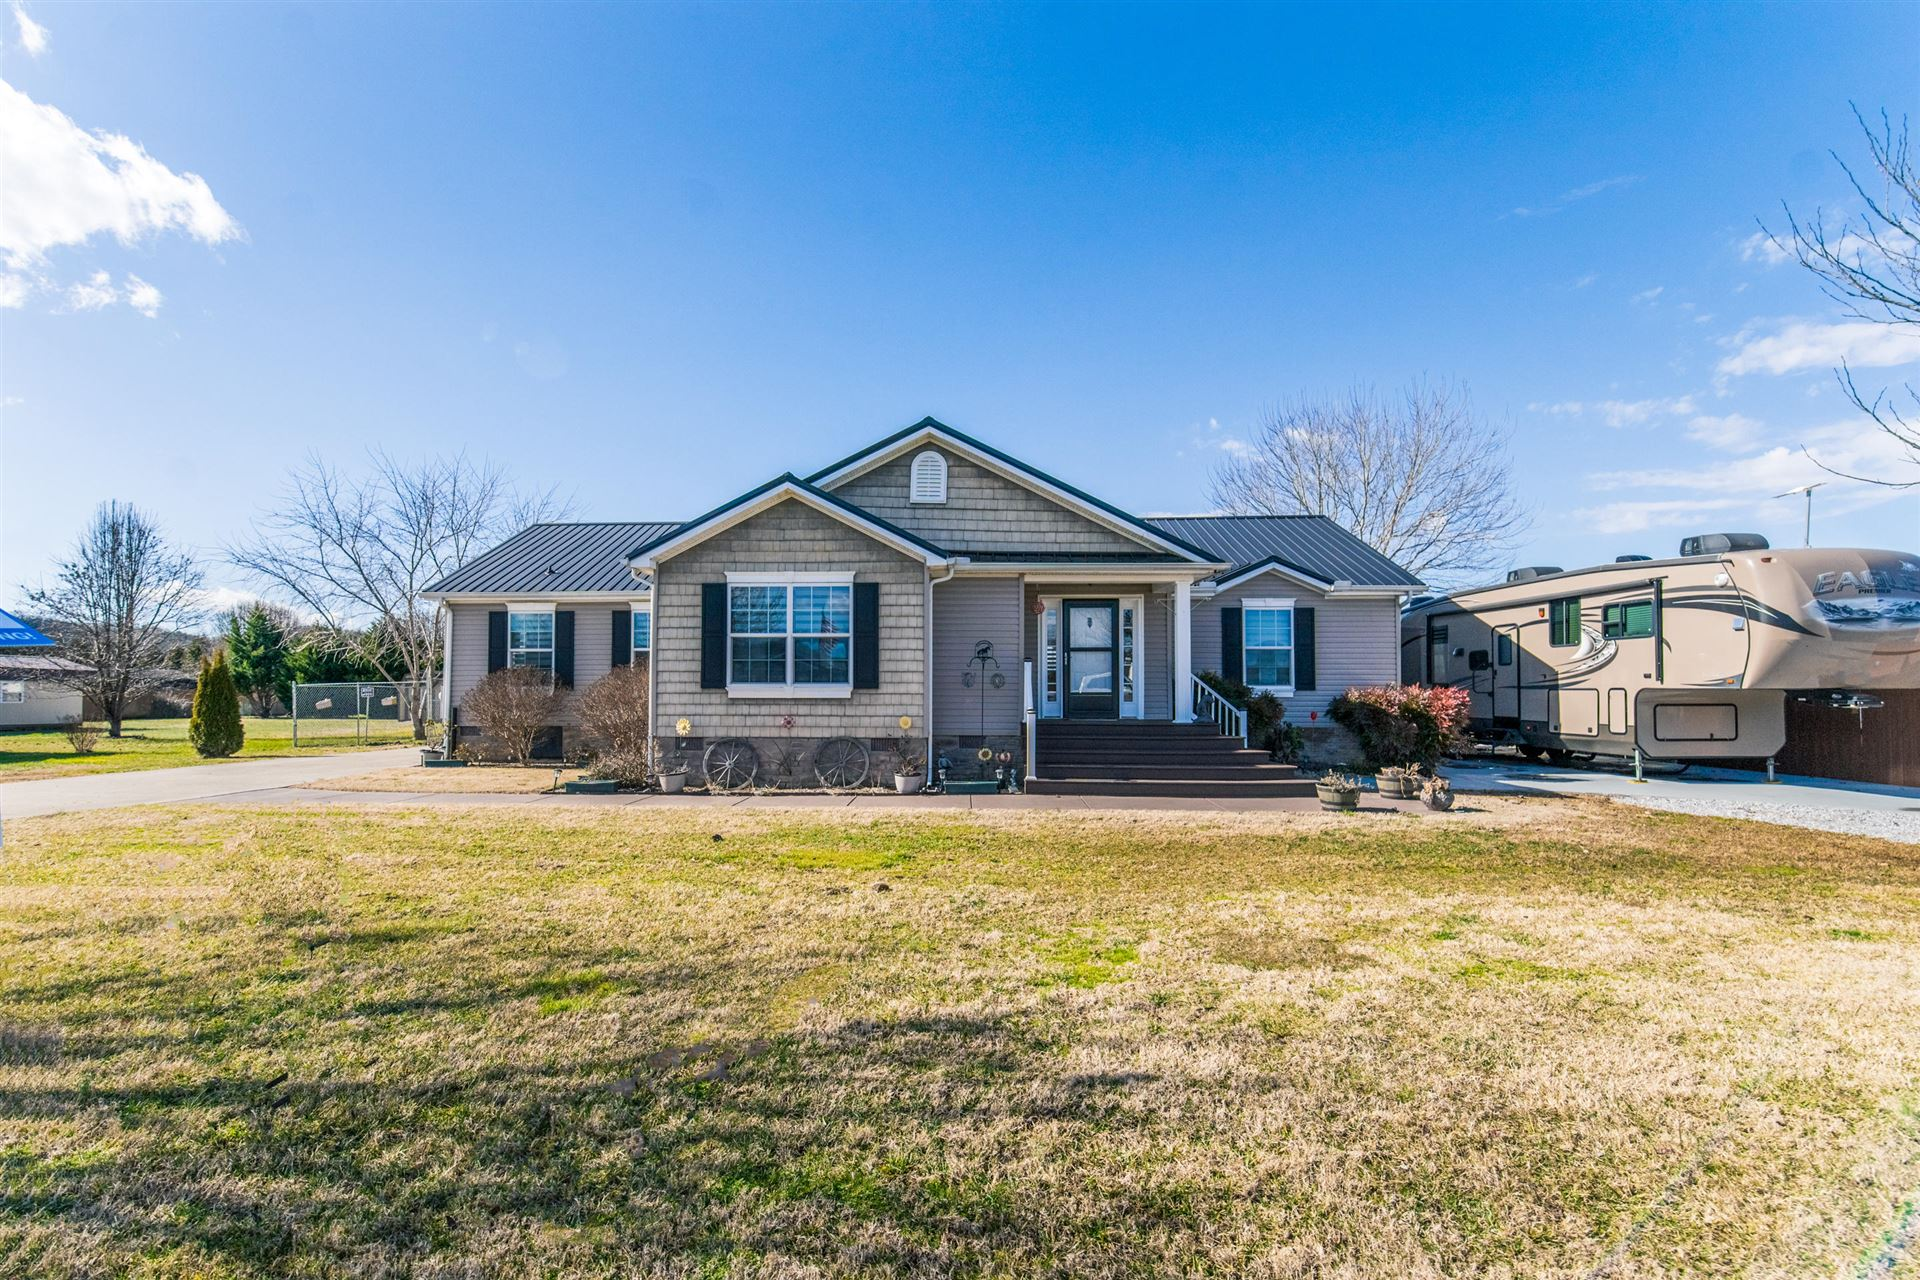 Photo of 2322 Binginham Island, Sevierville, TN 37876 (MLS # 1140636)